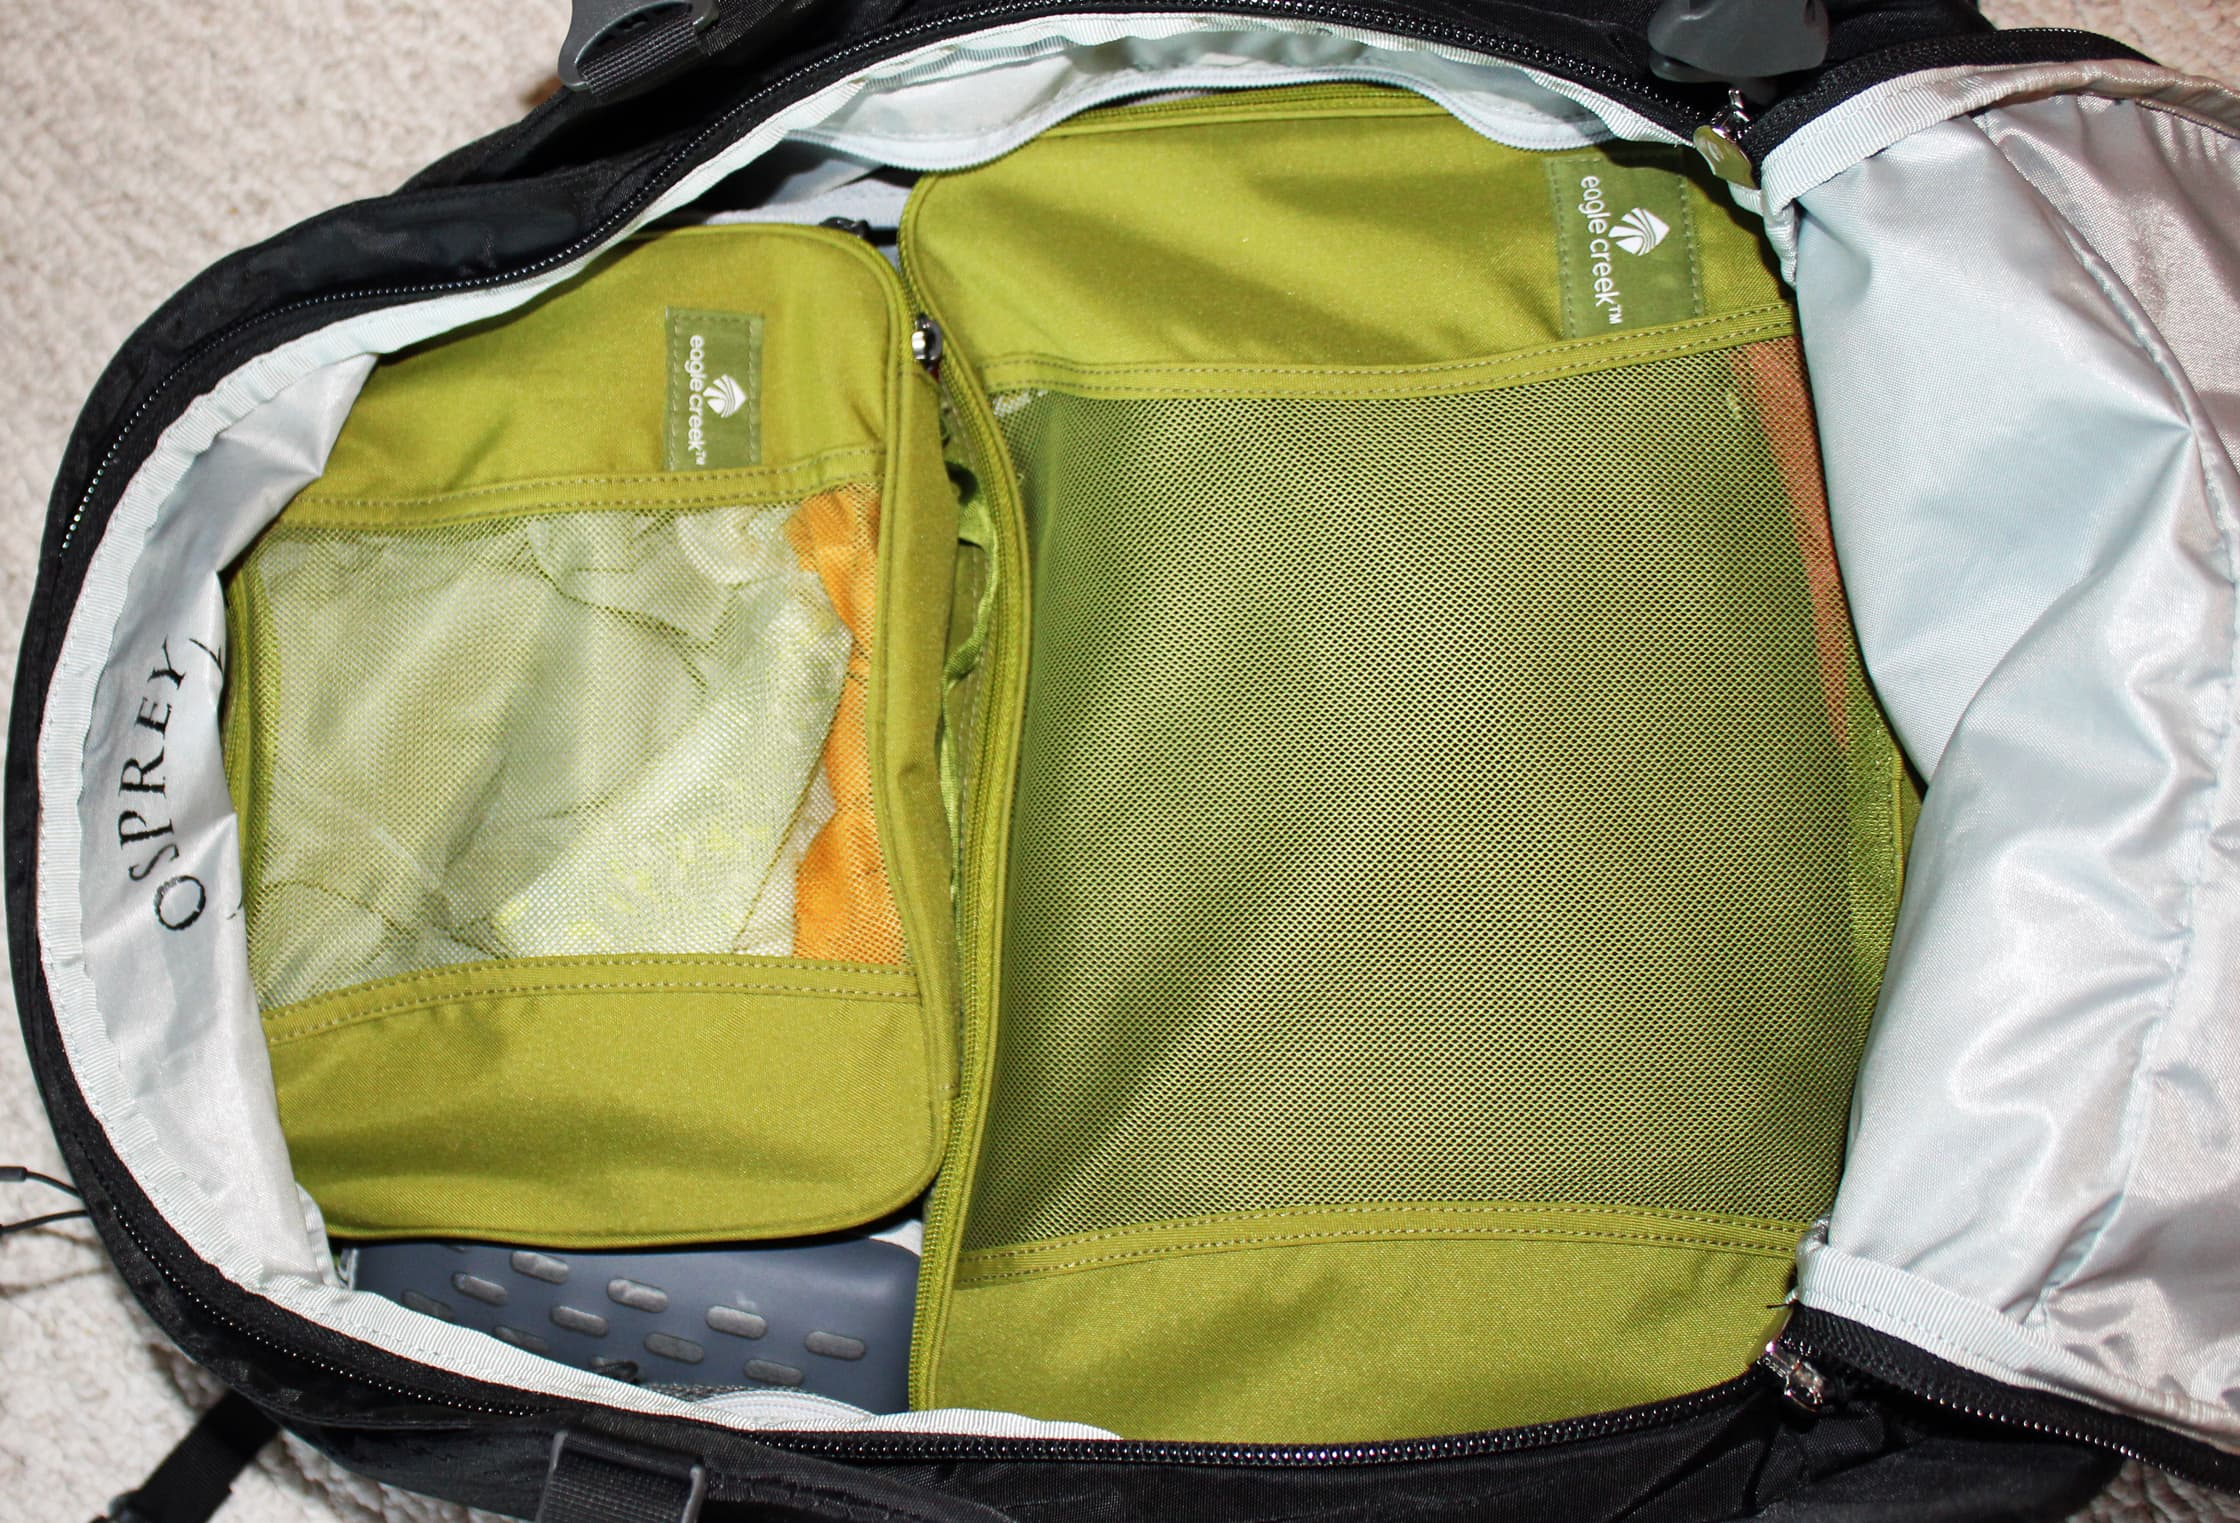 Osprey Porter 46 with Packing Cubes